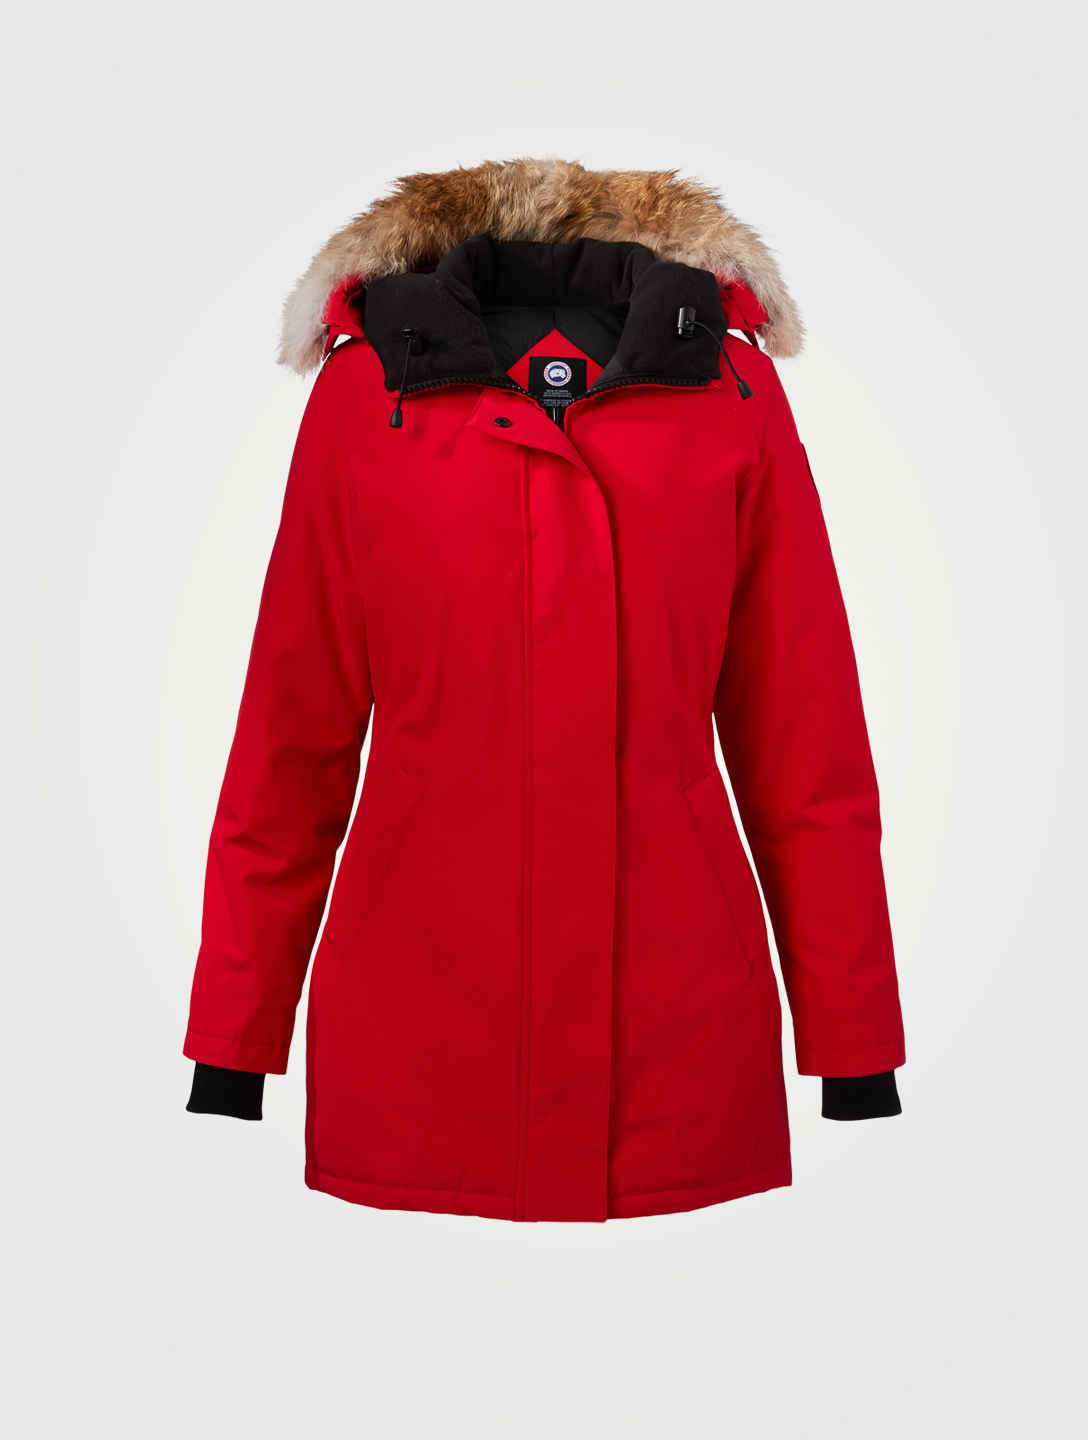 CANADA GOOSE Victoria Down Parka With Fur Hood Women's Red